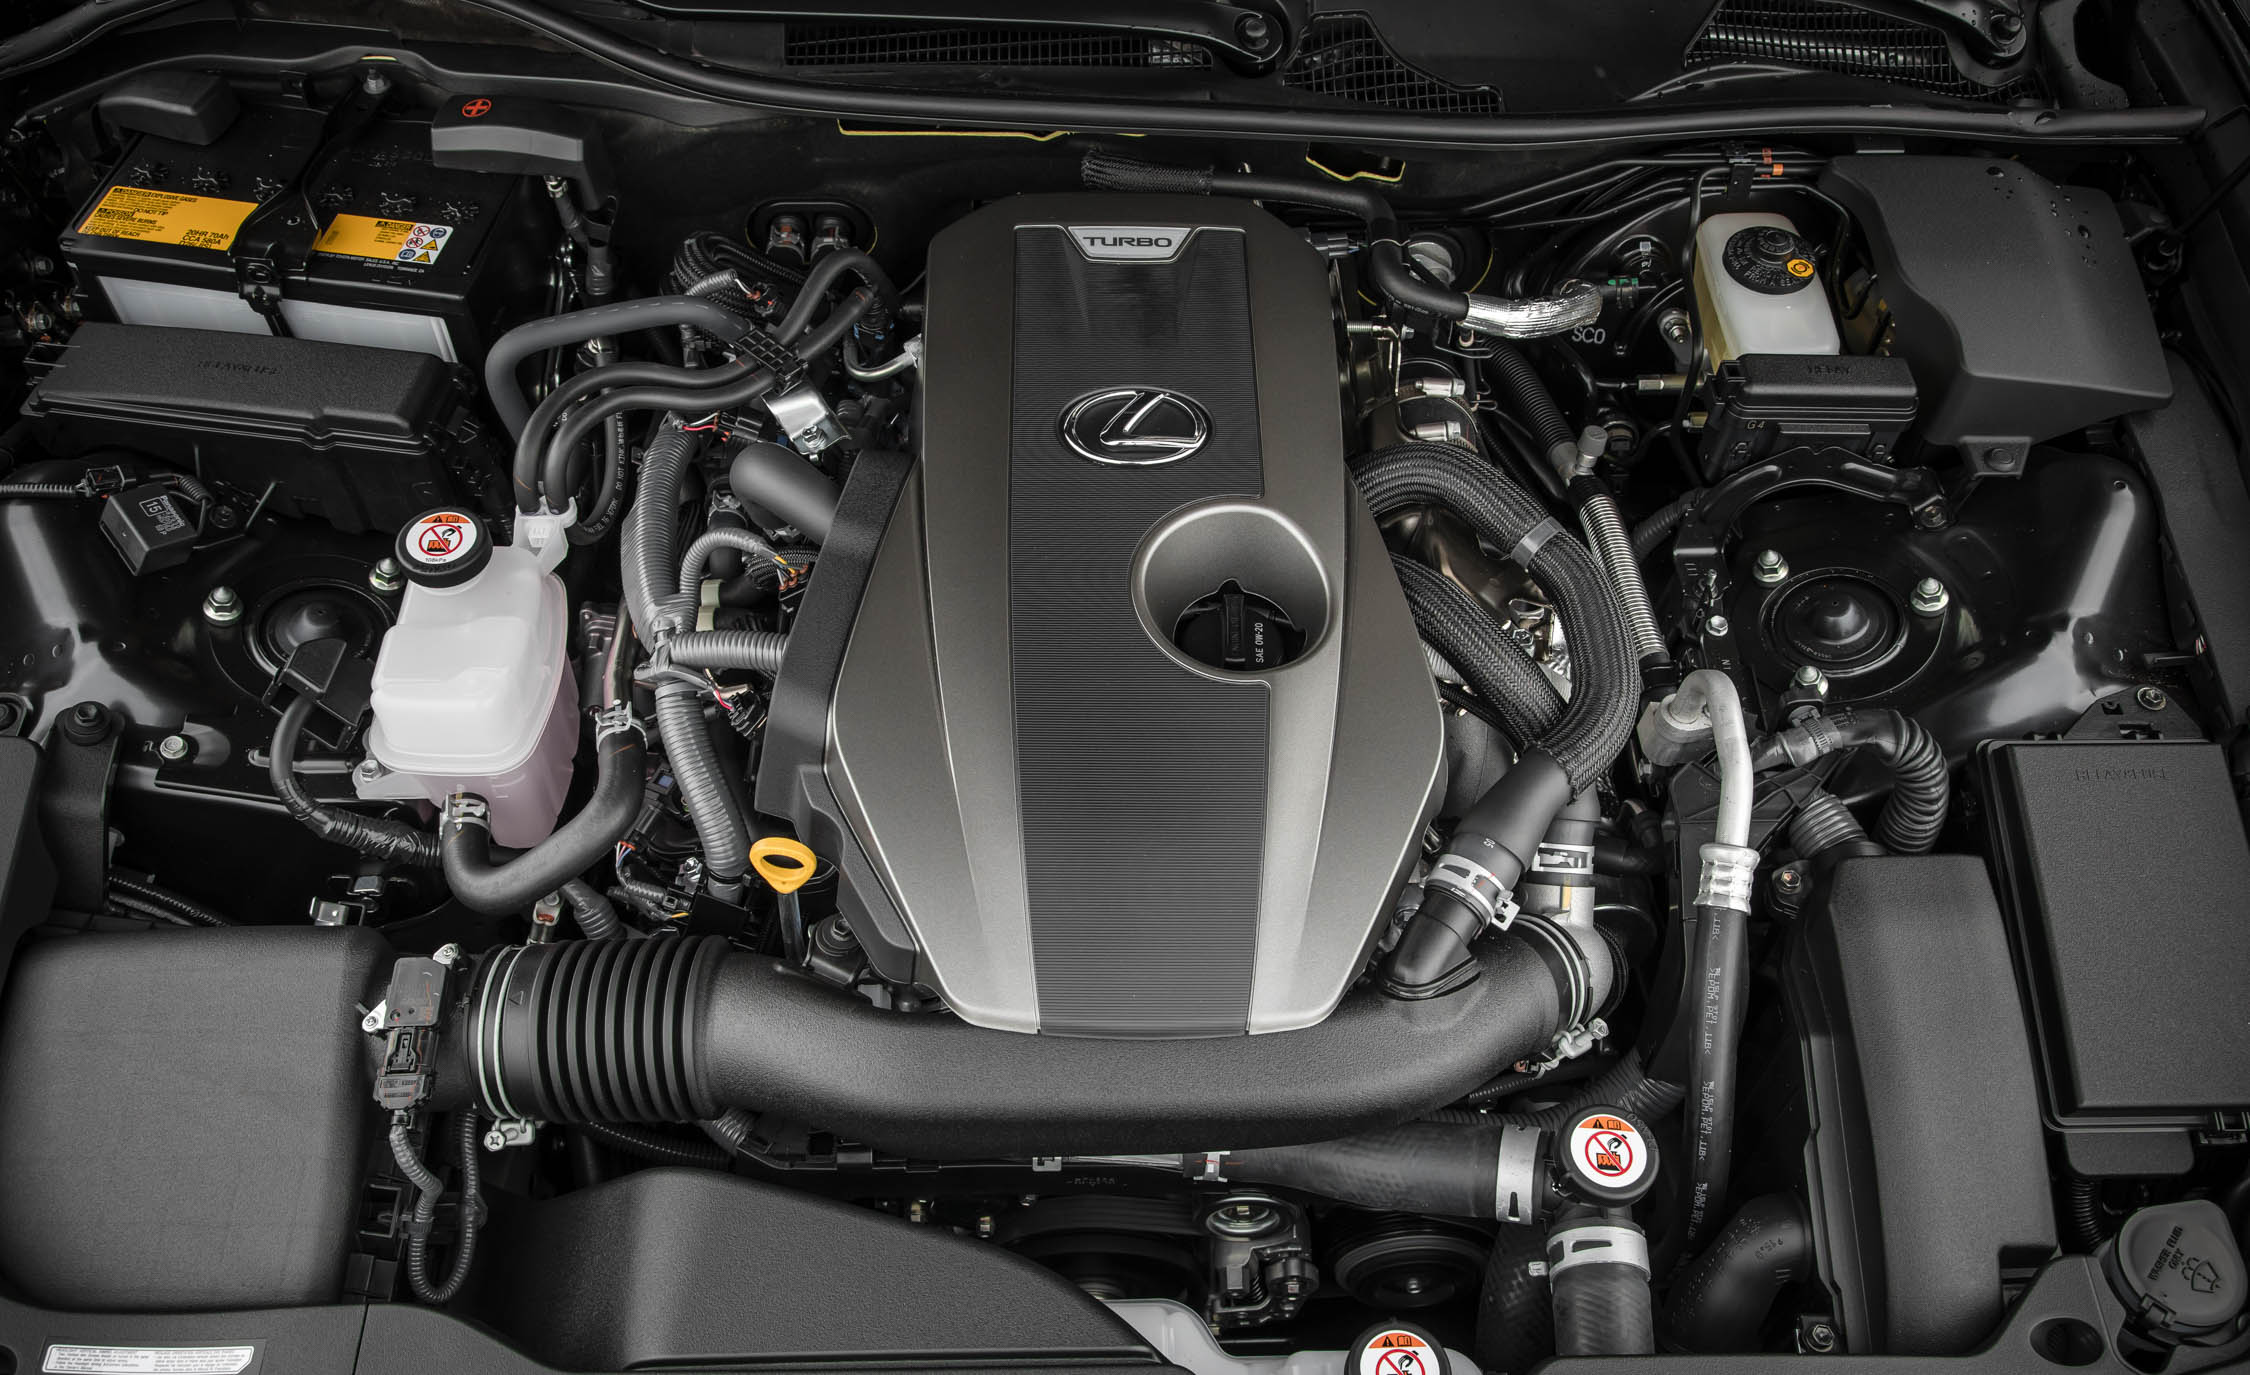 2017 Lexus GS200t View Engine (Photo 26 of 26)